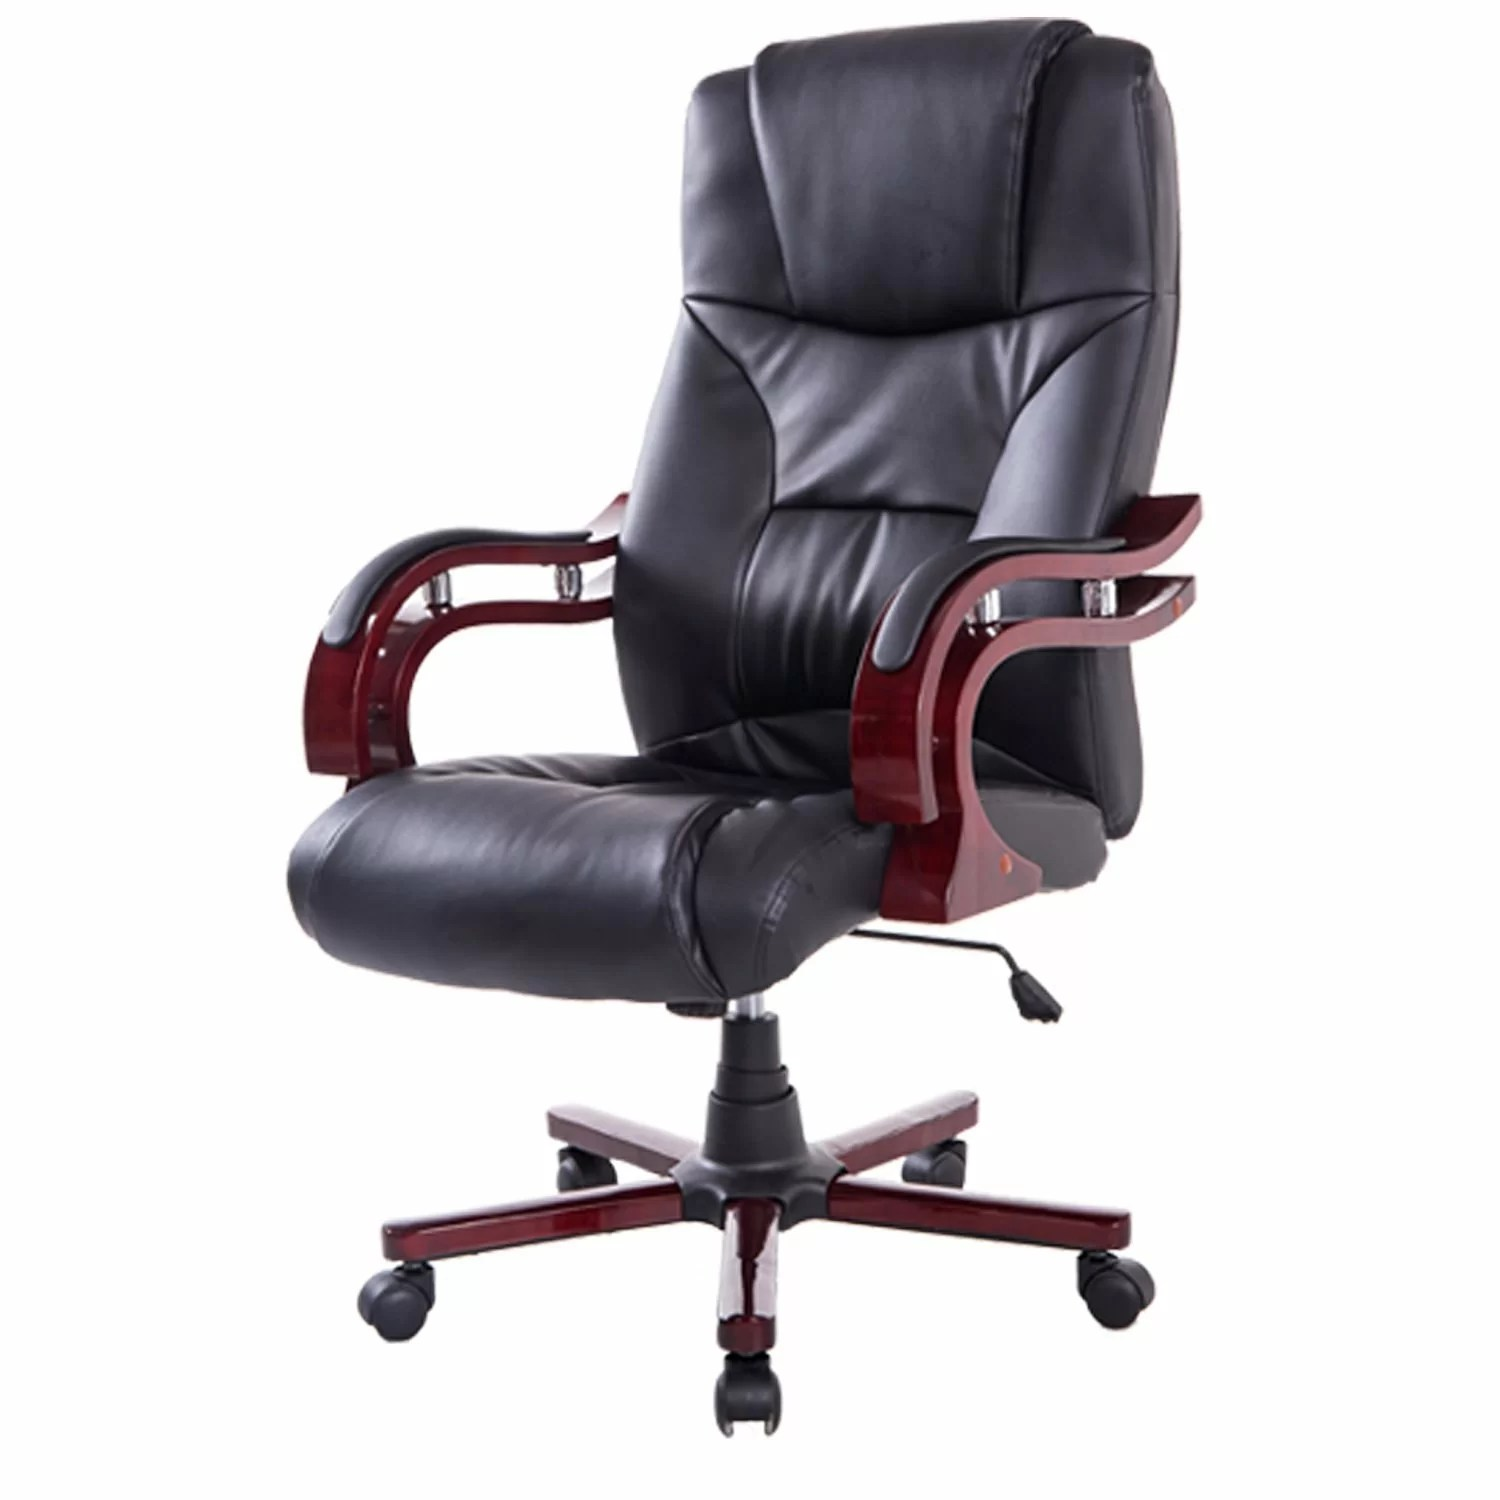 Executive Chairs Homcom High Back Executive Office Chair Wayfair Uk